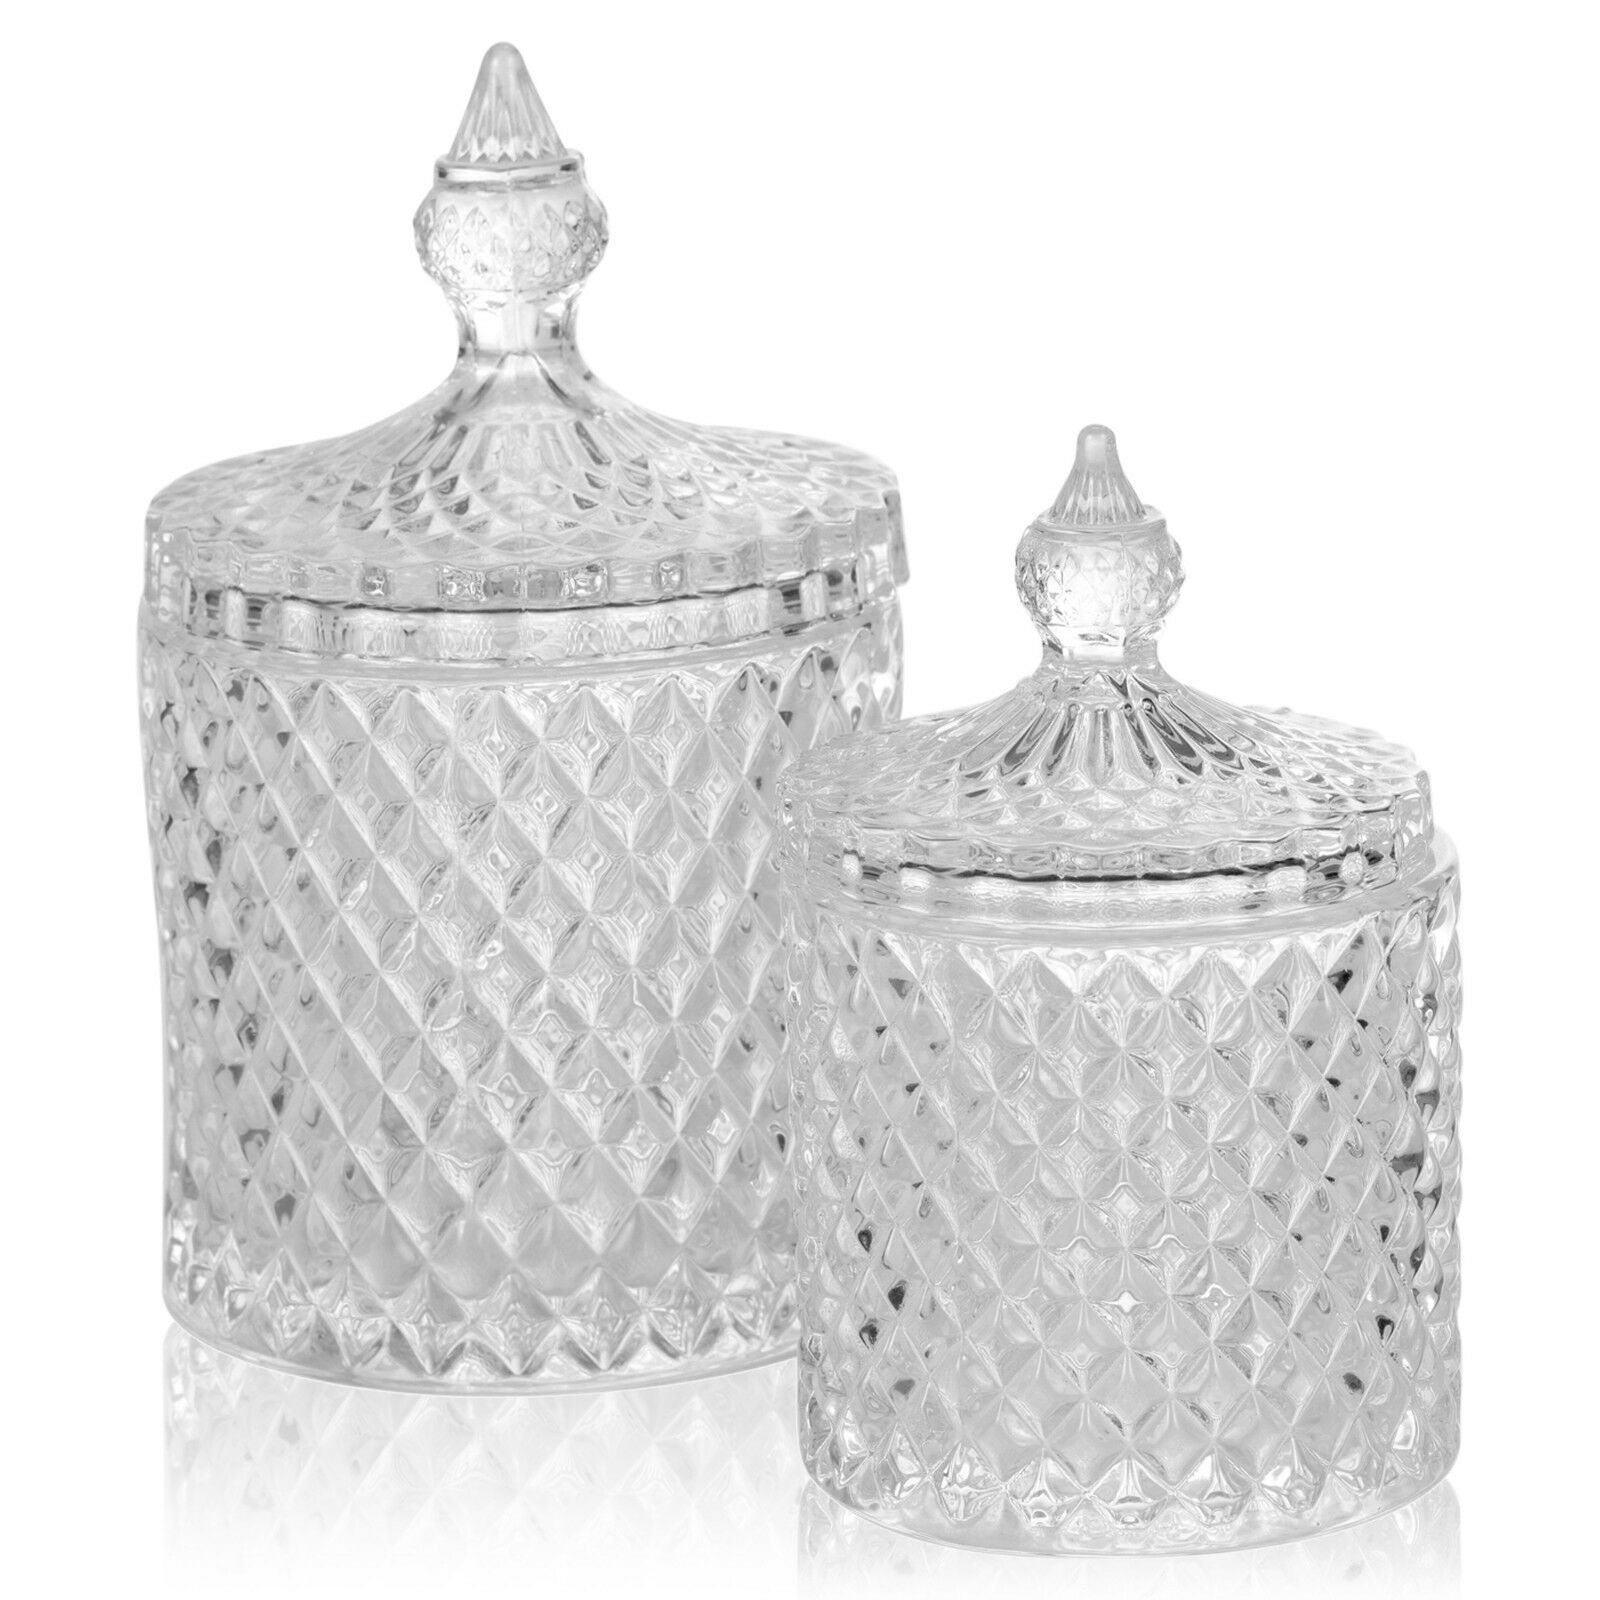 Stylish Glass Alpina Candy Jar Decorative Sweet Container With Lid 2 Sizes Glass Decorating Ideas Of Glass Decorating In 2020 Glass Jars With Lids Candy Jars Jar